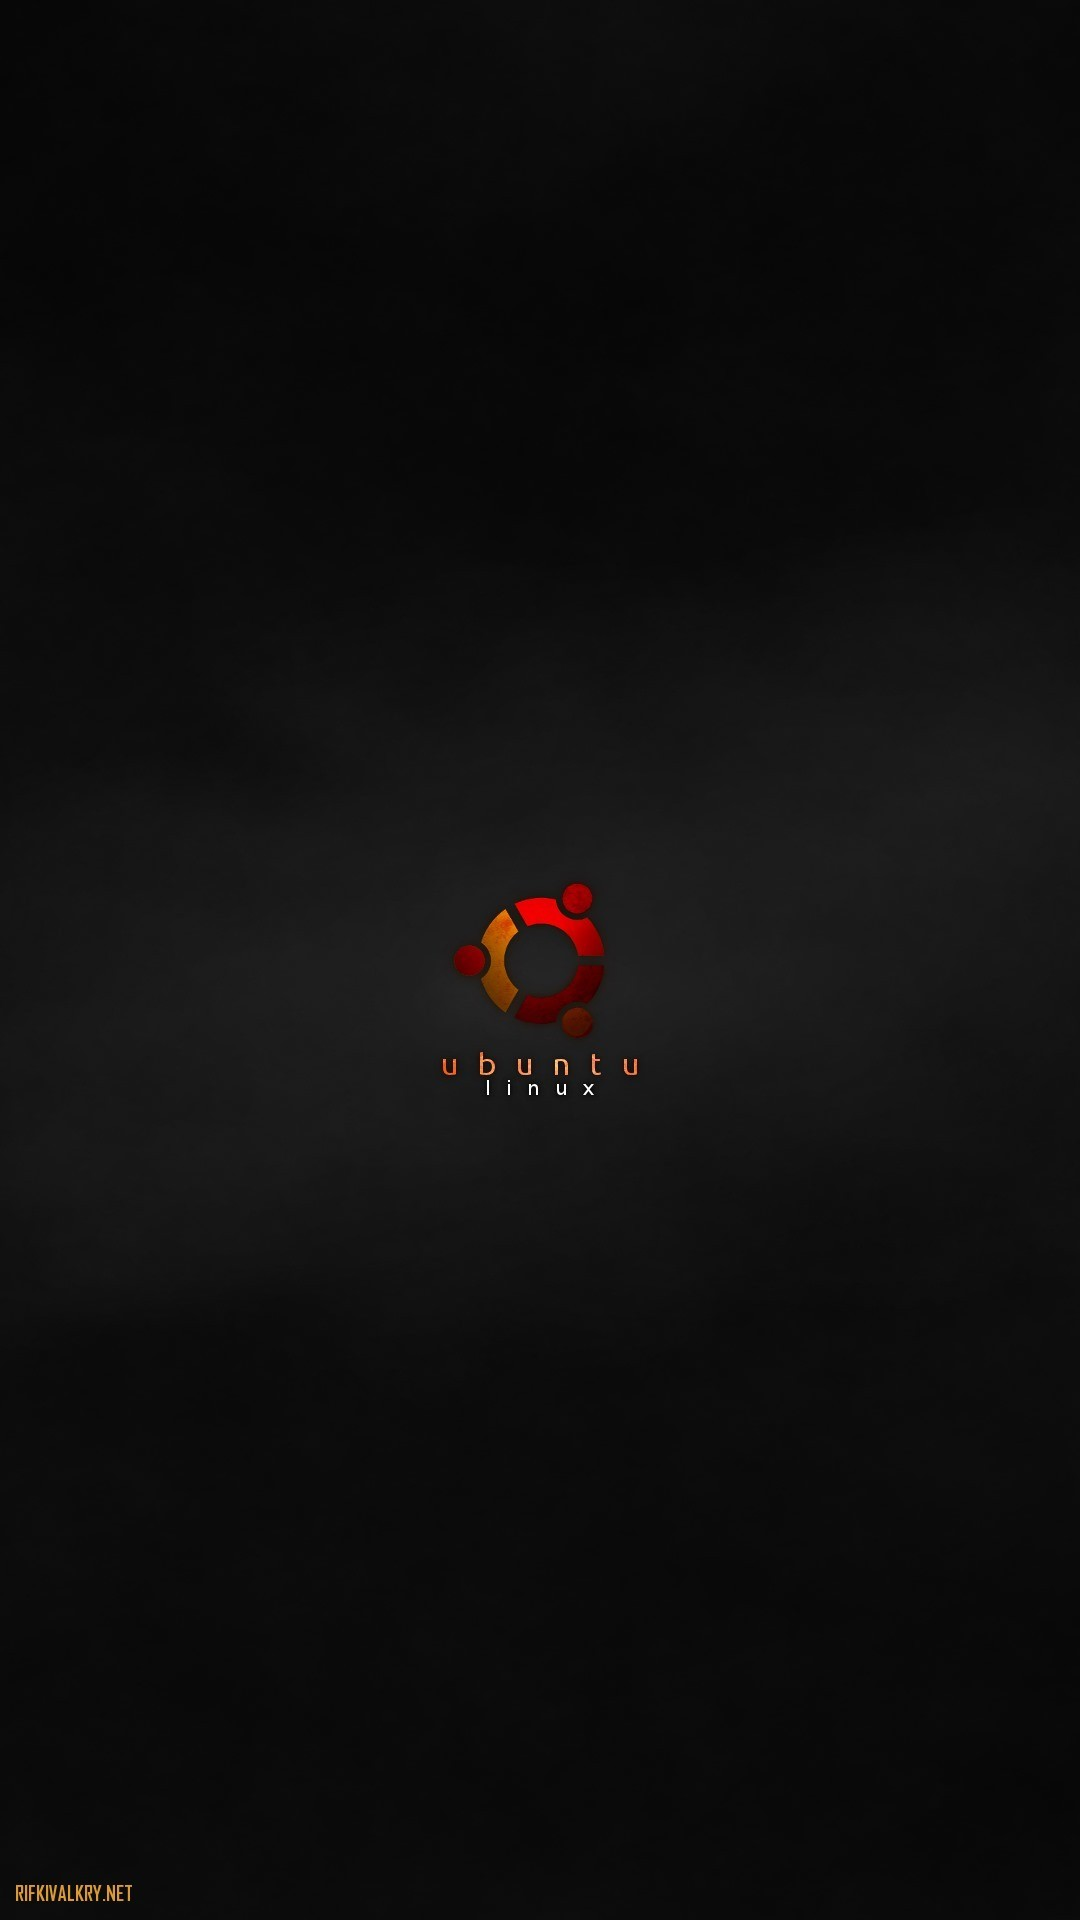 Ubuntu Linux Wallpapers High Definition Wallpapers High